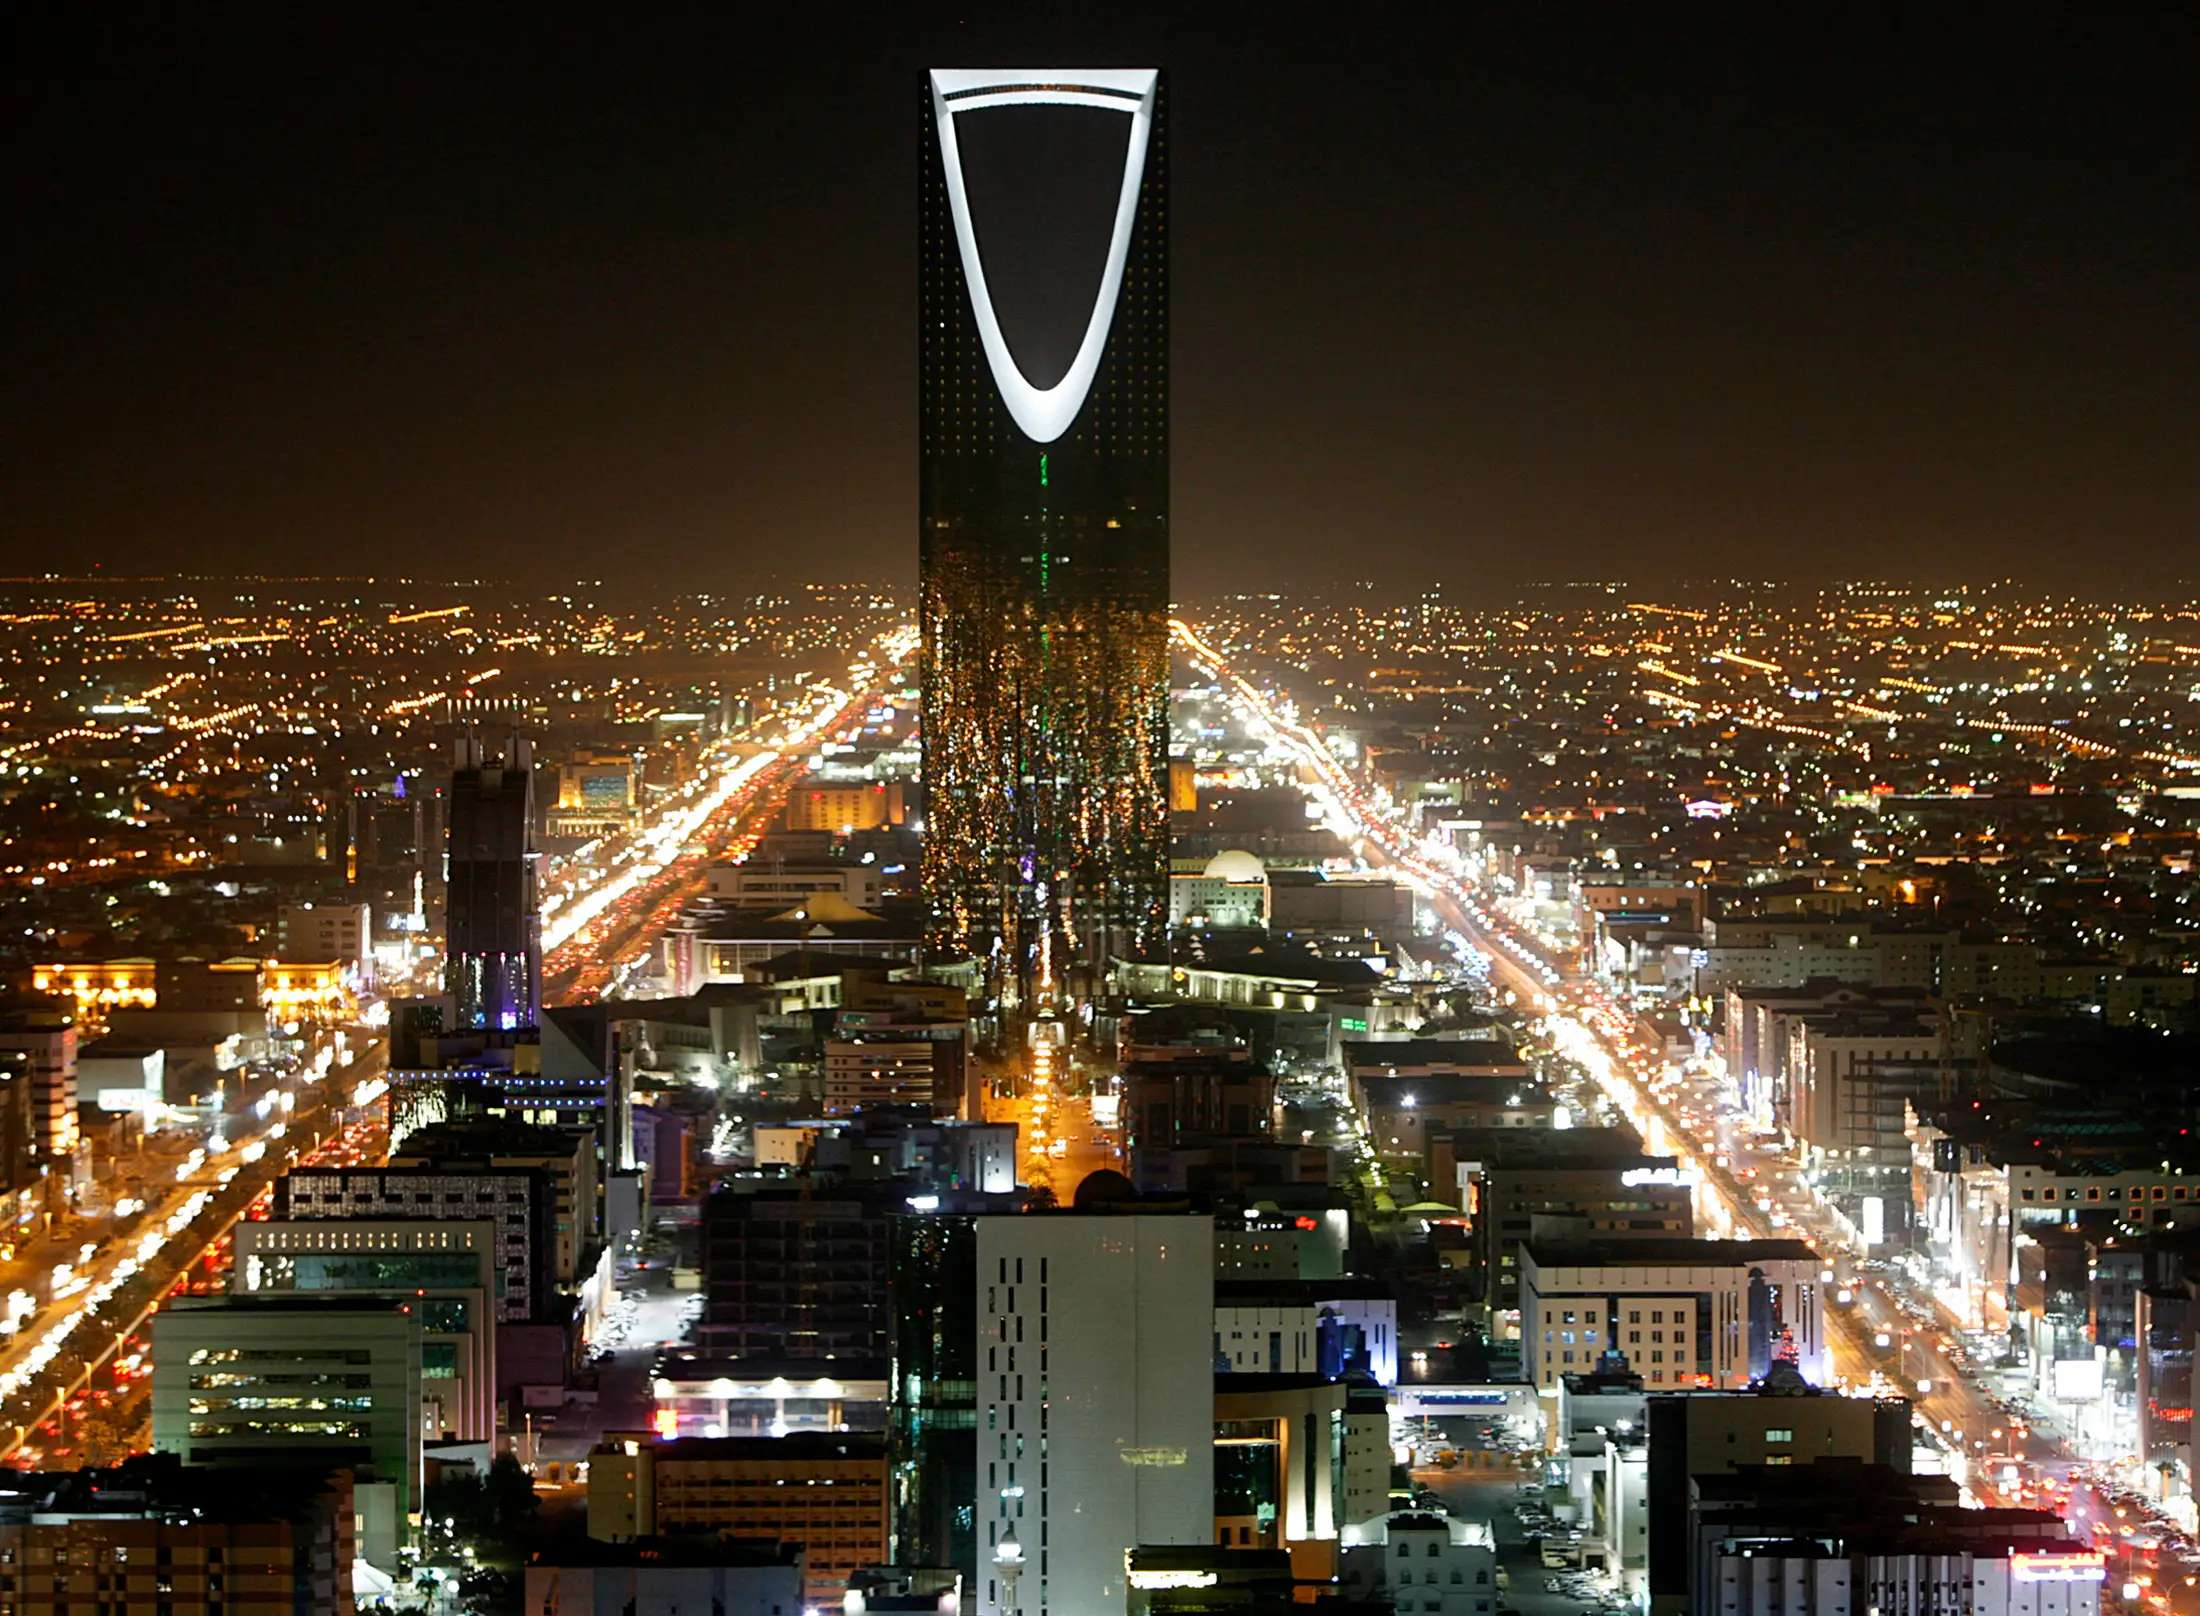 1. RIYADH — Saudi Arabia's capital is by far the most improved financial centre on the list, rising by an astonishing 55 spaces since 2010, as the city prepares to open its financial markets to foreigners.